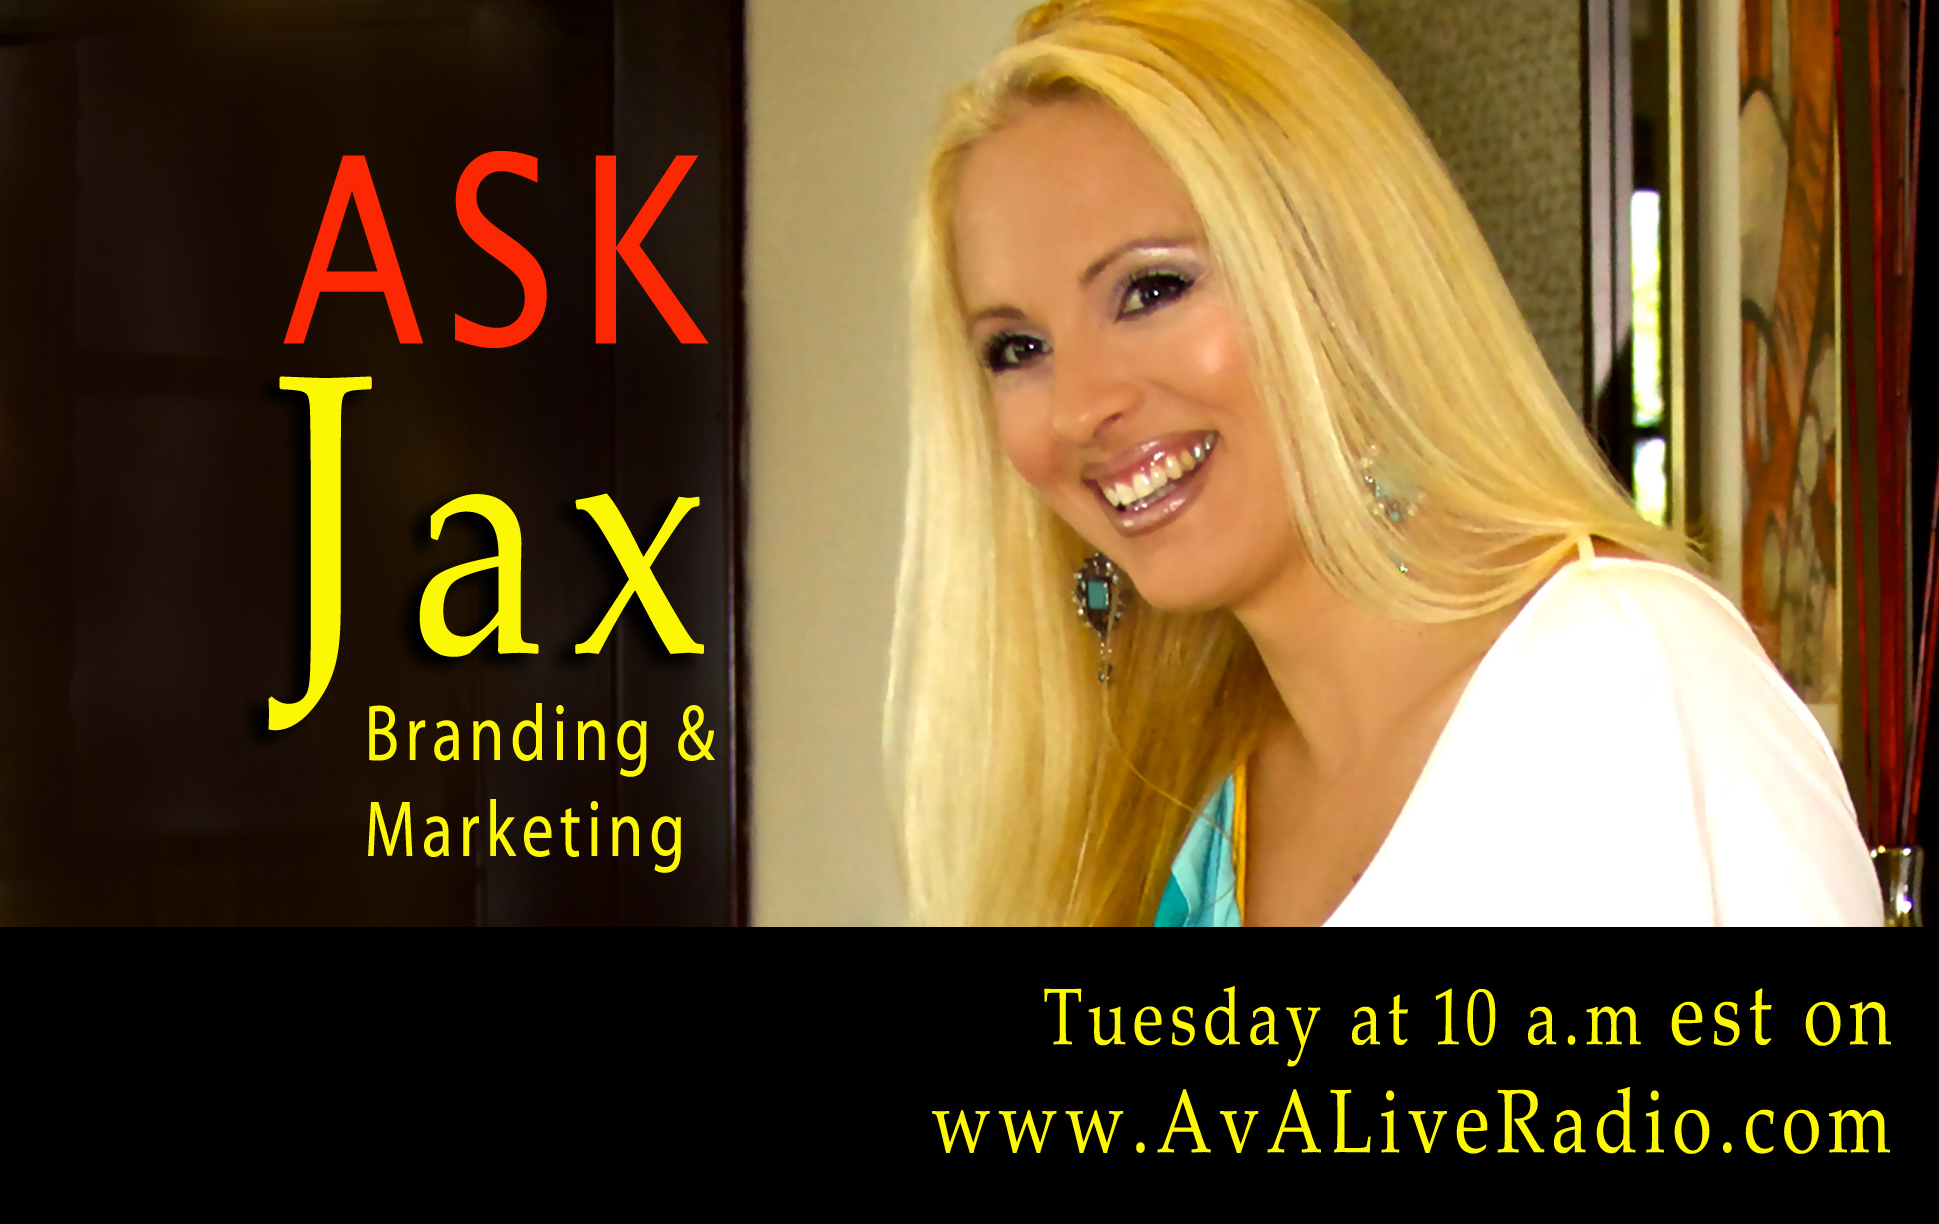 The A.V.A Live Radio: How to Brand and Market your name using Search engine keywords, adwords, and facebook